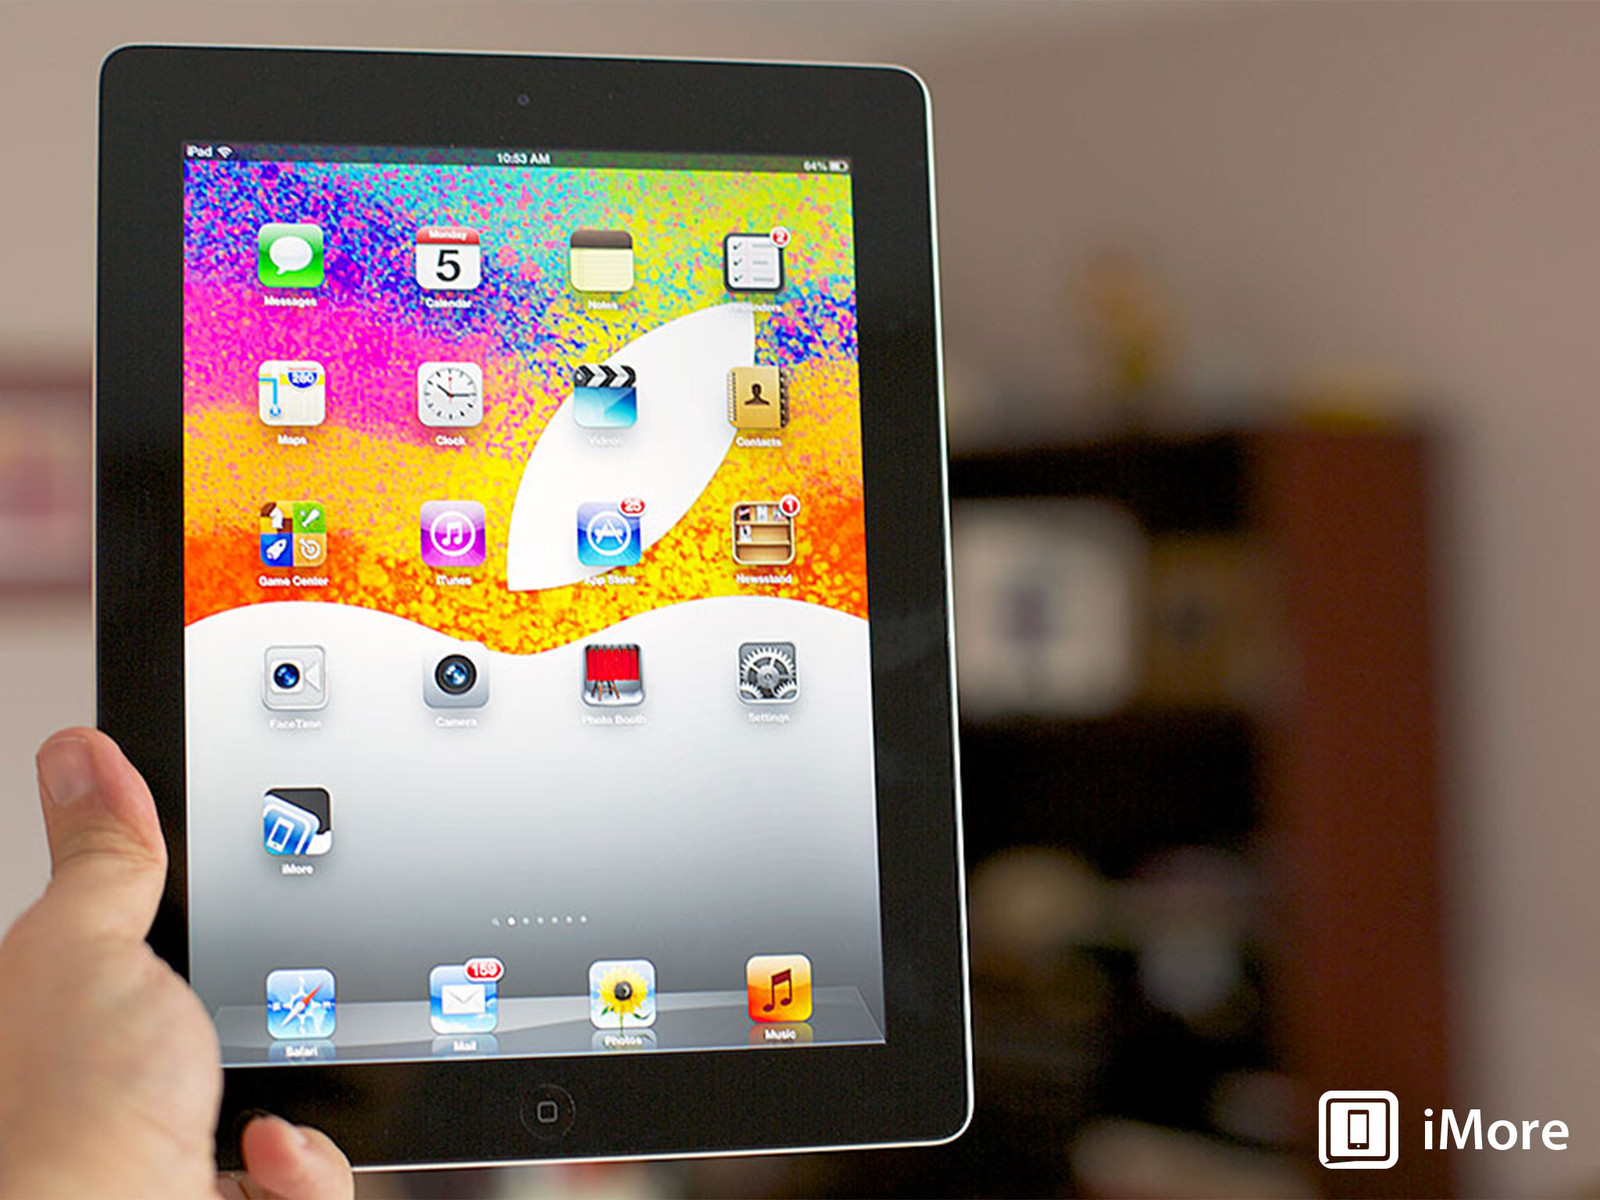 iPad 4 might be set to replace iPad 2 tomorrow as well, Lightning to reign supreme!